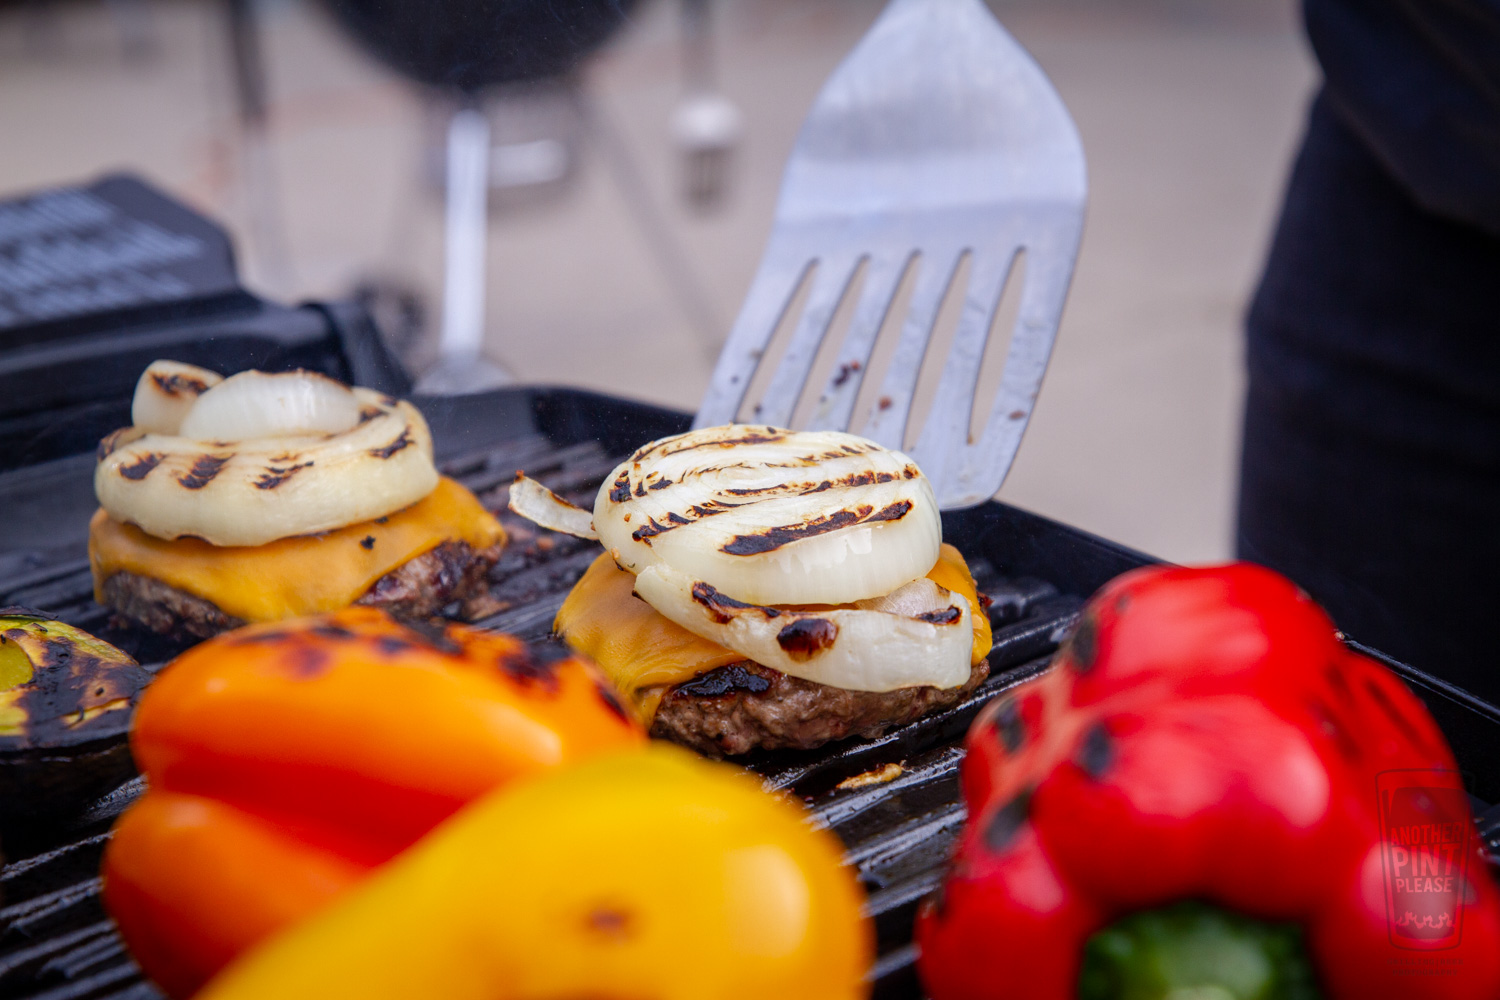 Grilled Cheeseburger with Onion